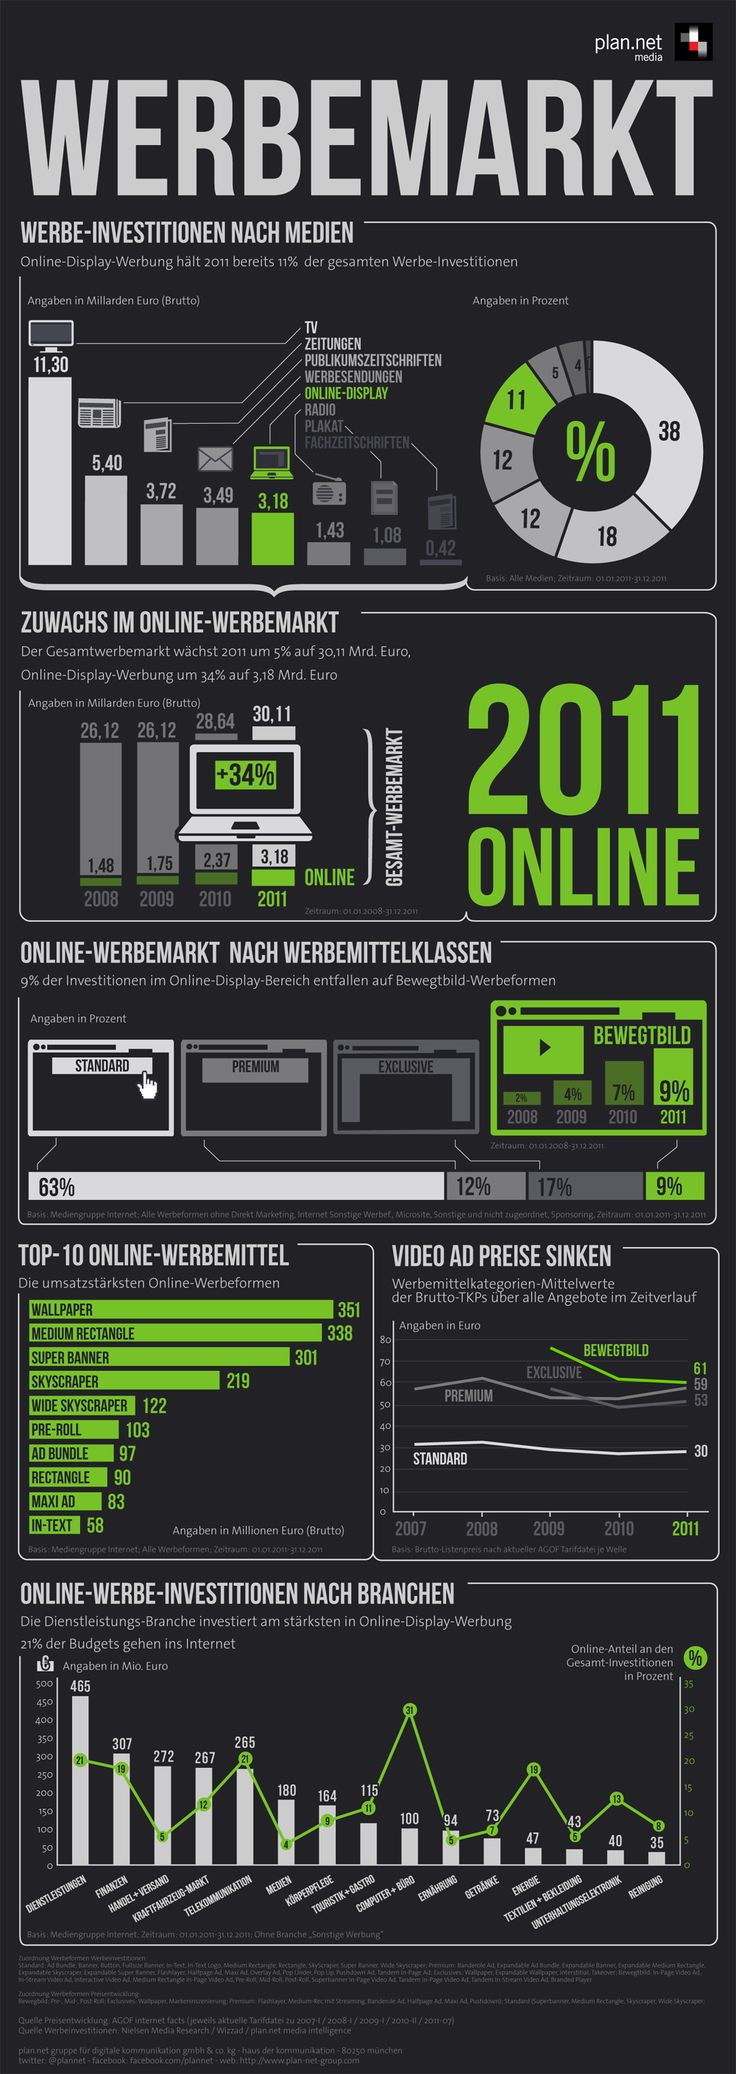 Germanys (Online)Ad-market in 2011